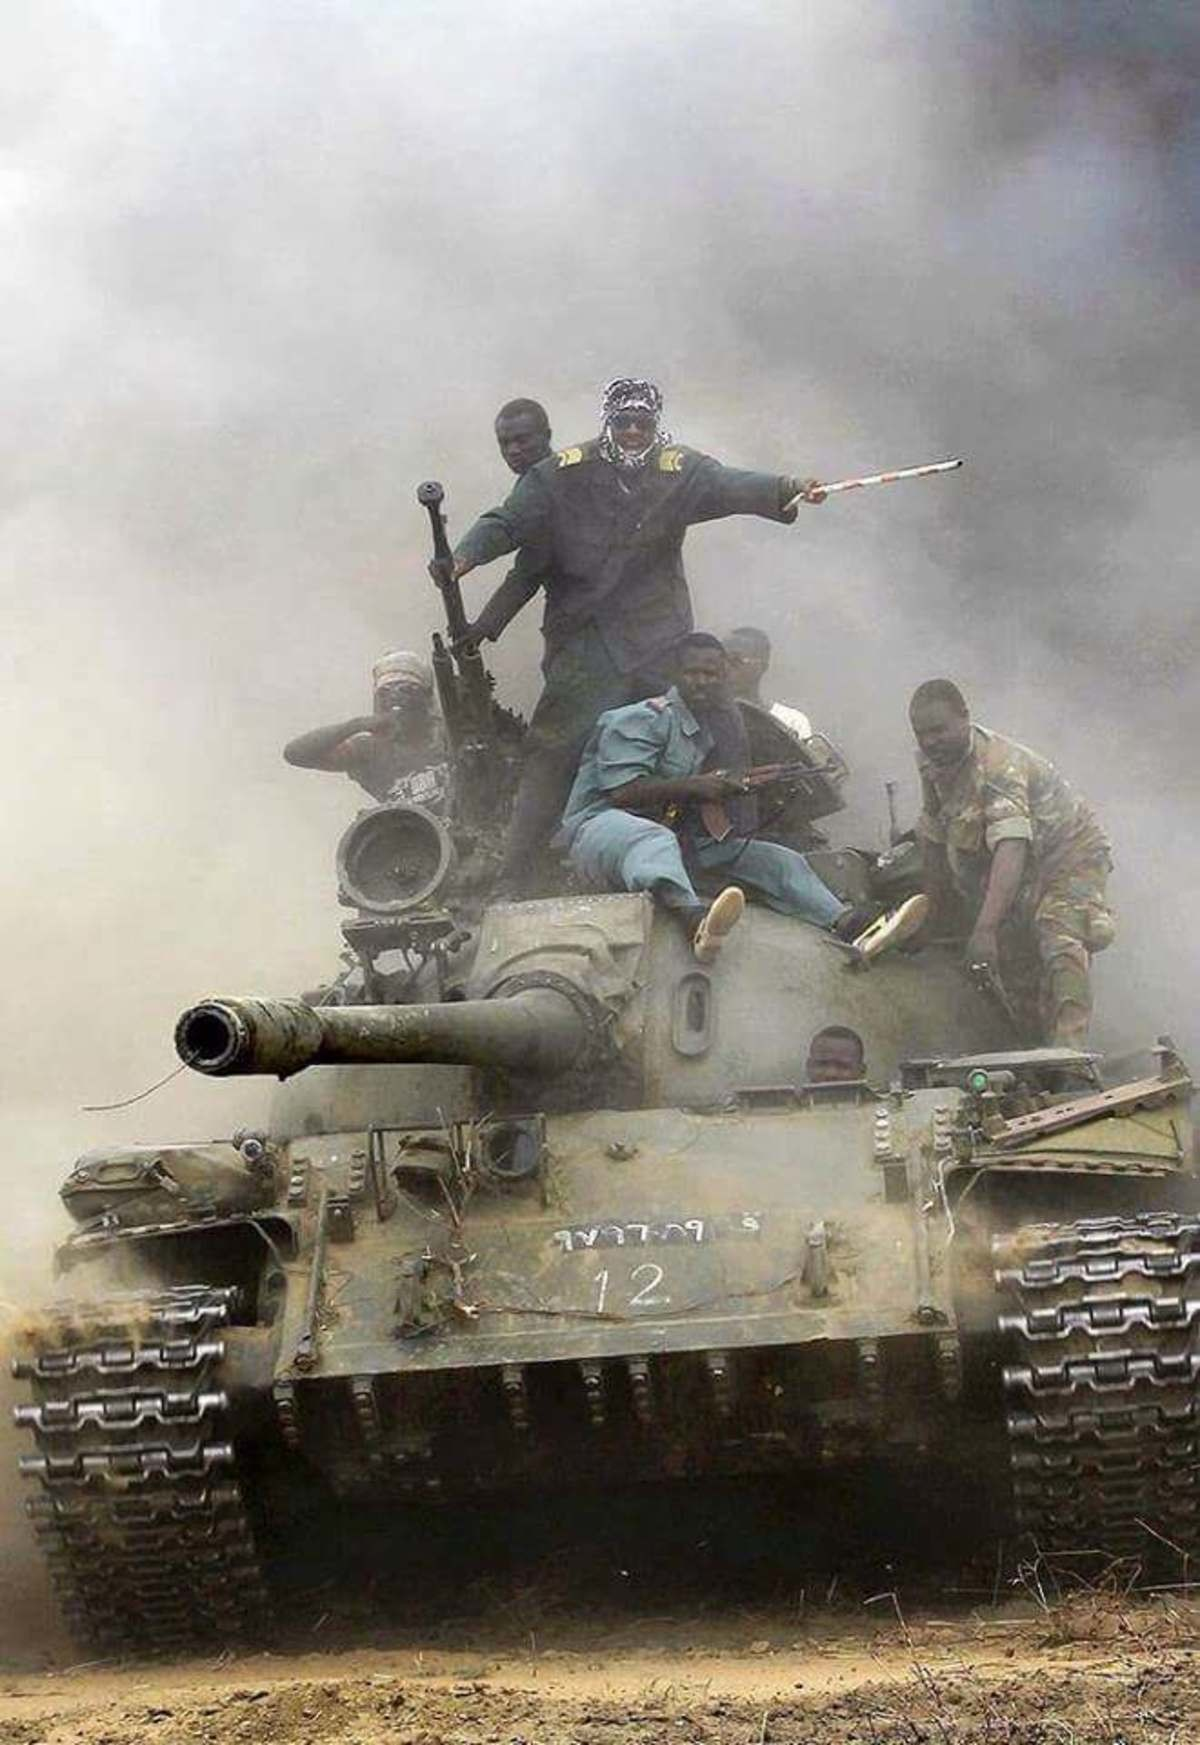 Tank during sudan civil war. .. Knowing my luck, my attempt would look something like this...